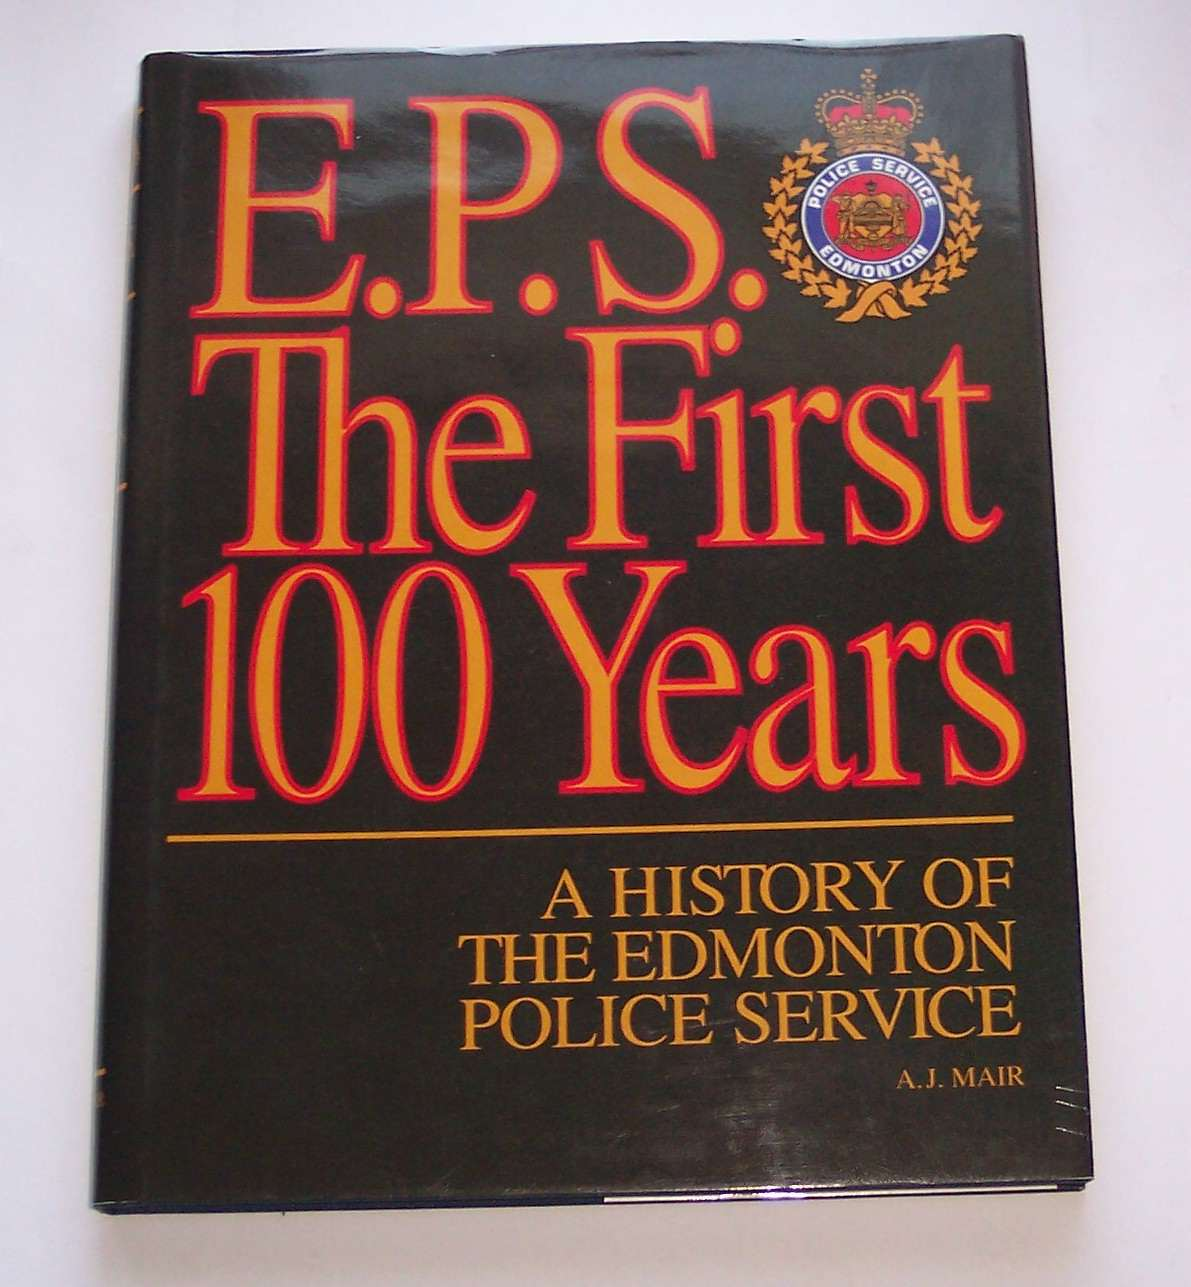 Image for E. P. S. the First 100 Years A History of the Edmonton Police Service